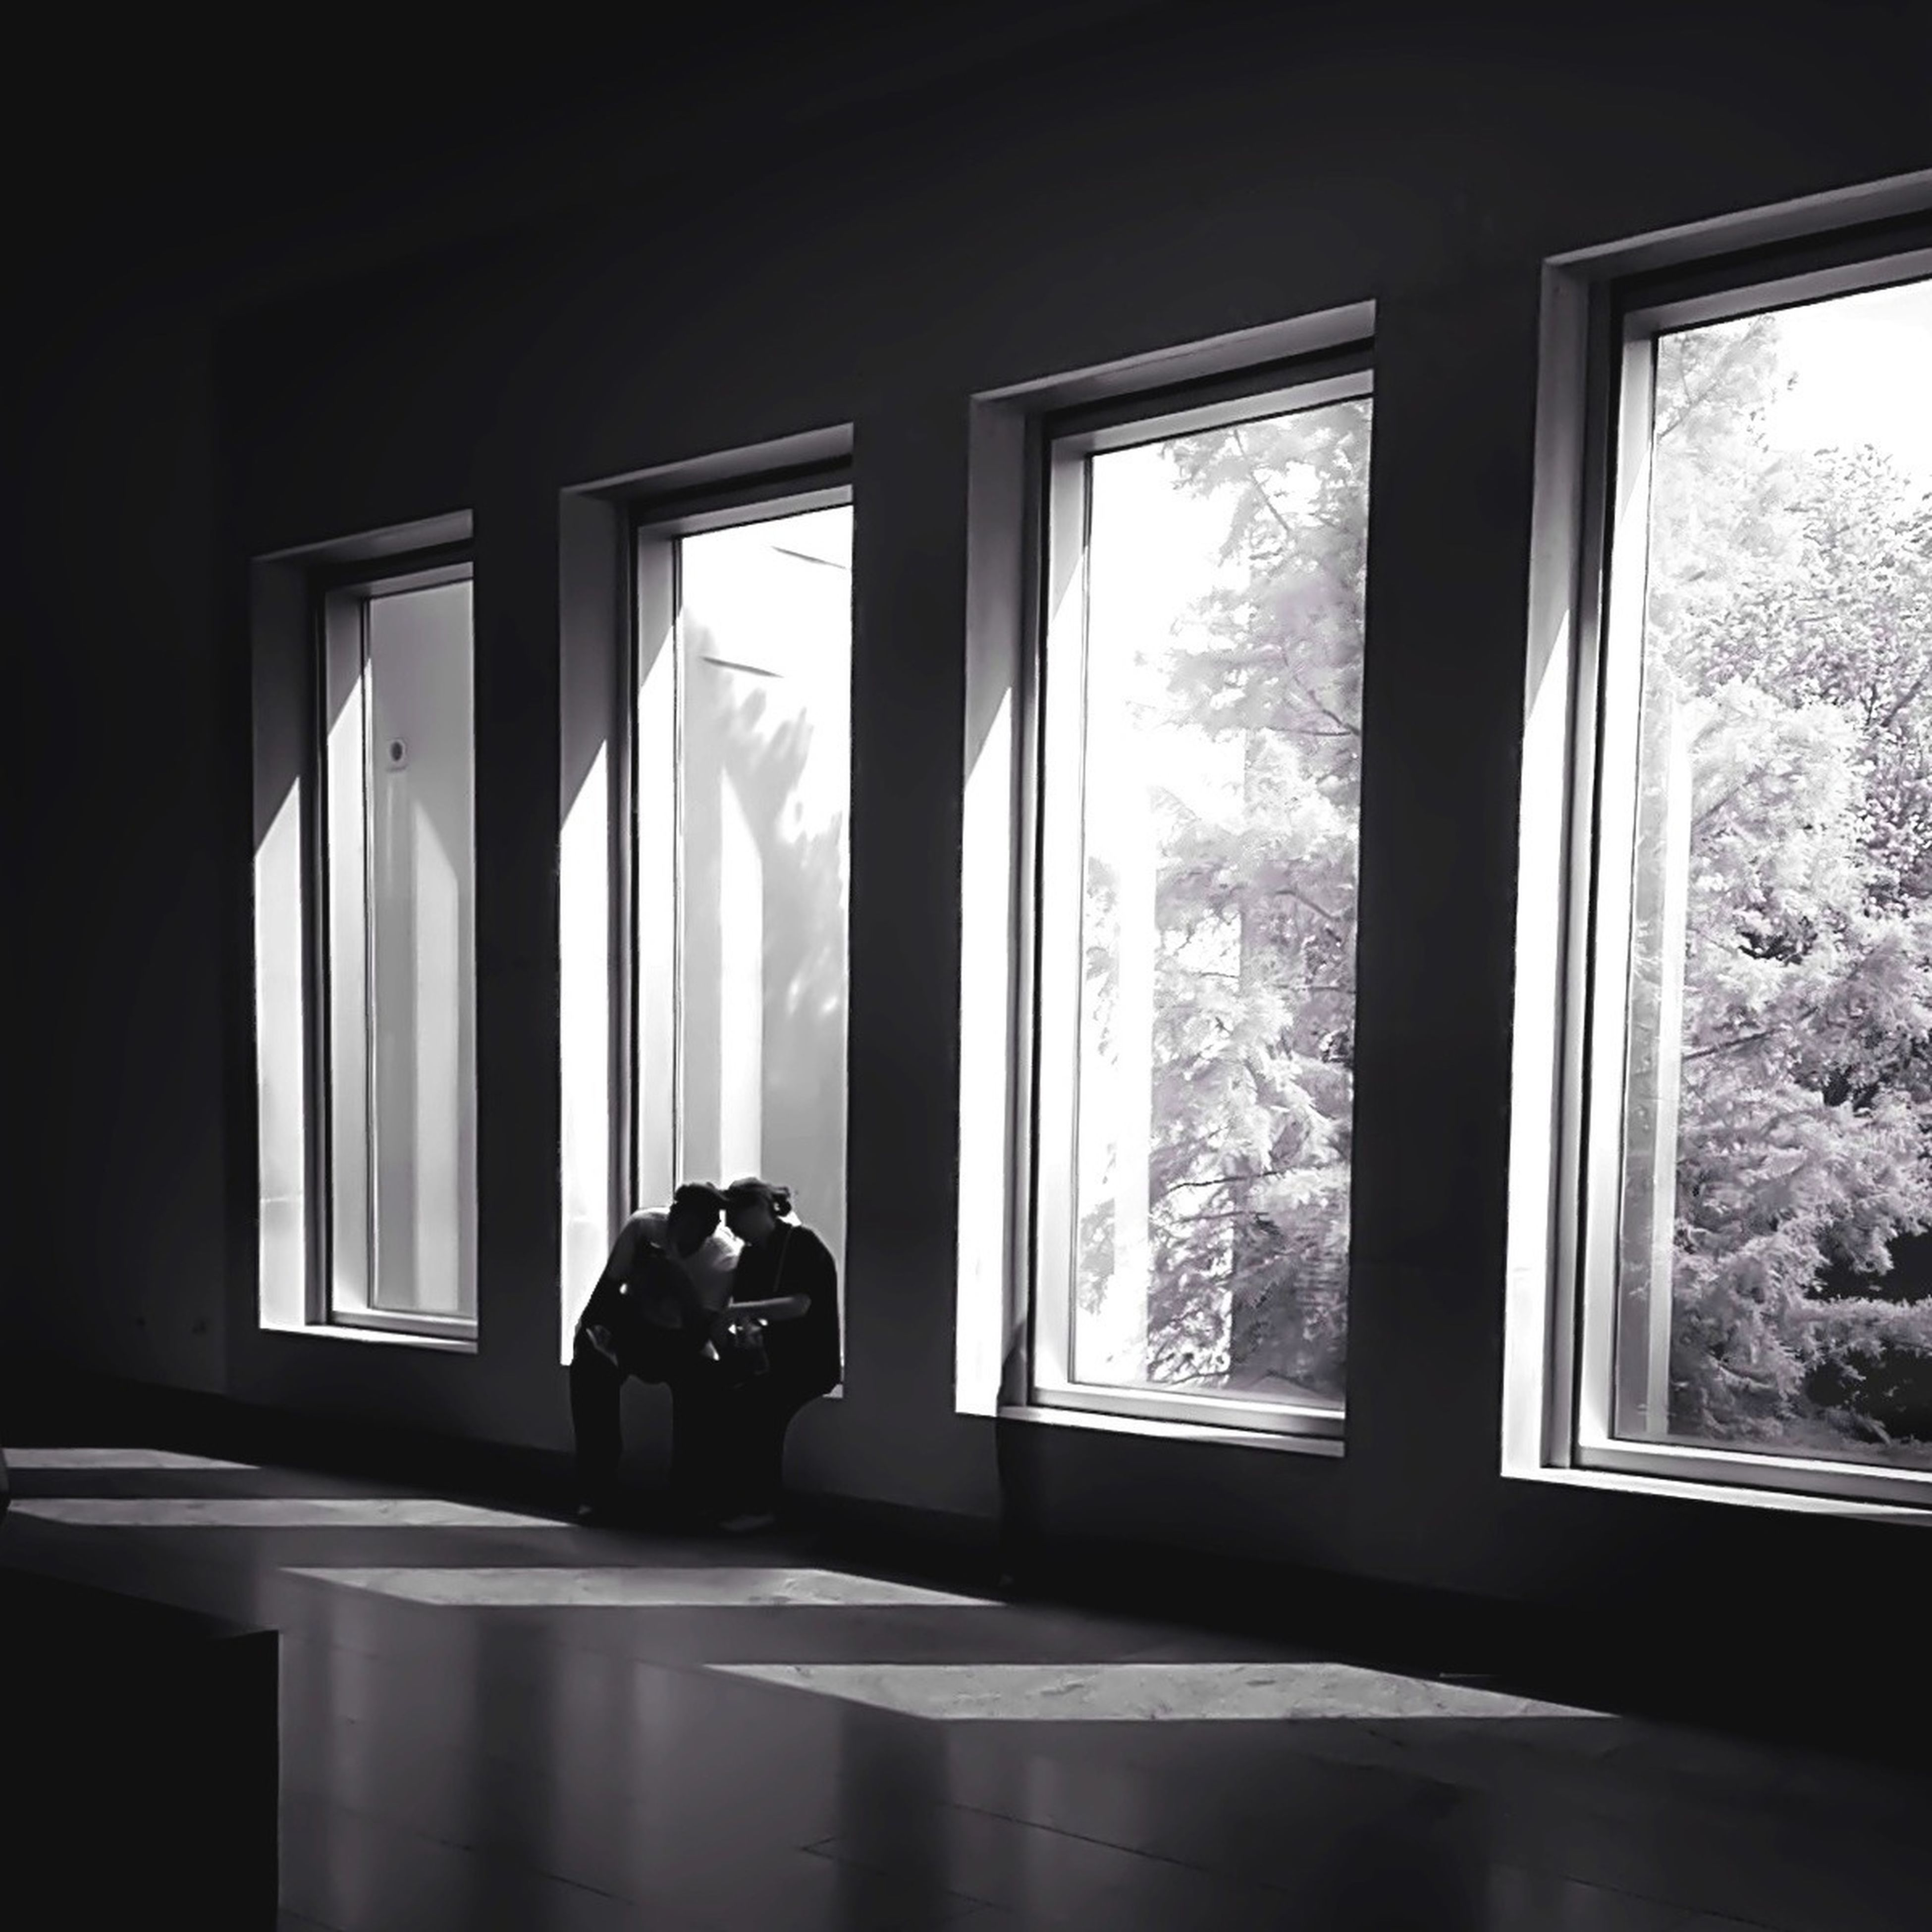 indoors, window, glass - material, transparent, lifestyles, looking through window, rear view, home interior, men, person, leisure activity, sitting, curtain, standing, glass, silhouette, day, full length